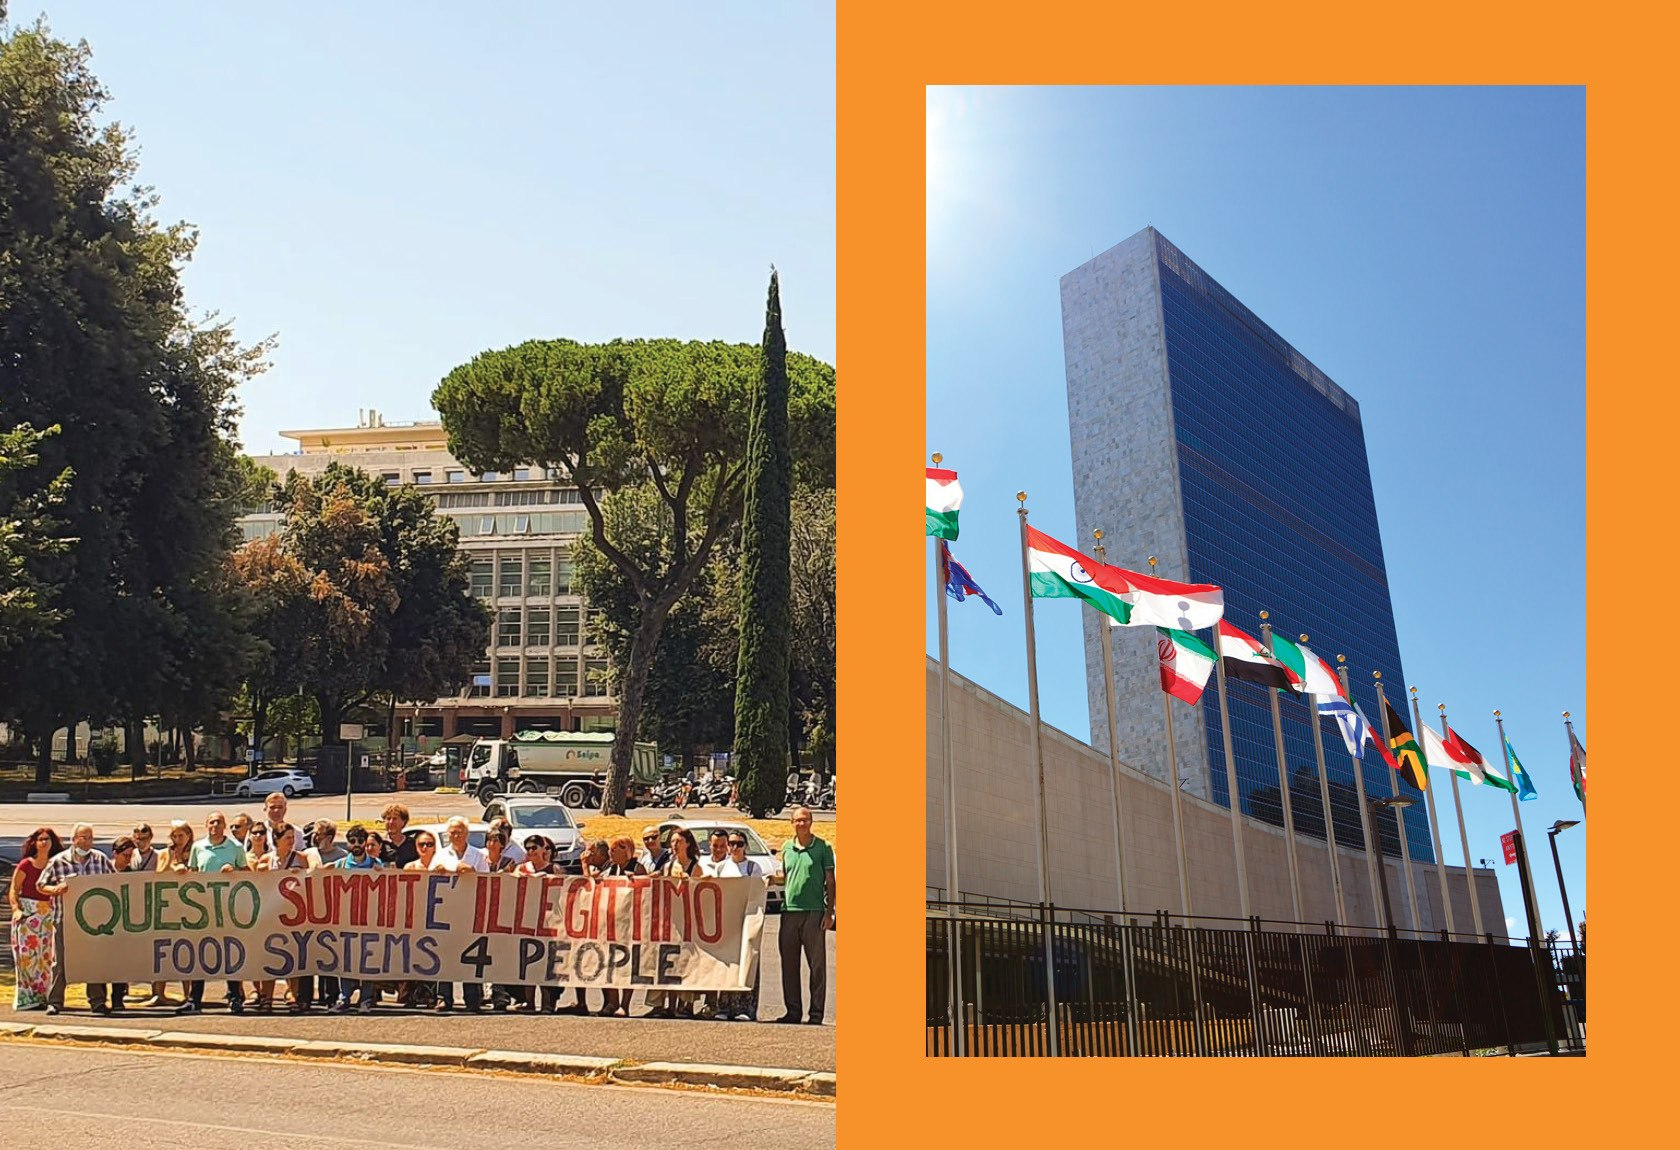 A photo of protesters on the left in Rome and a photo of the United Nations building in New York on the right with an orange border. September 2021